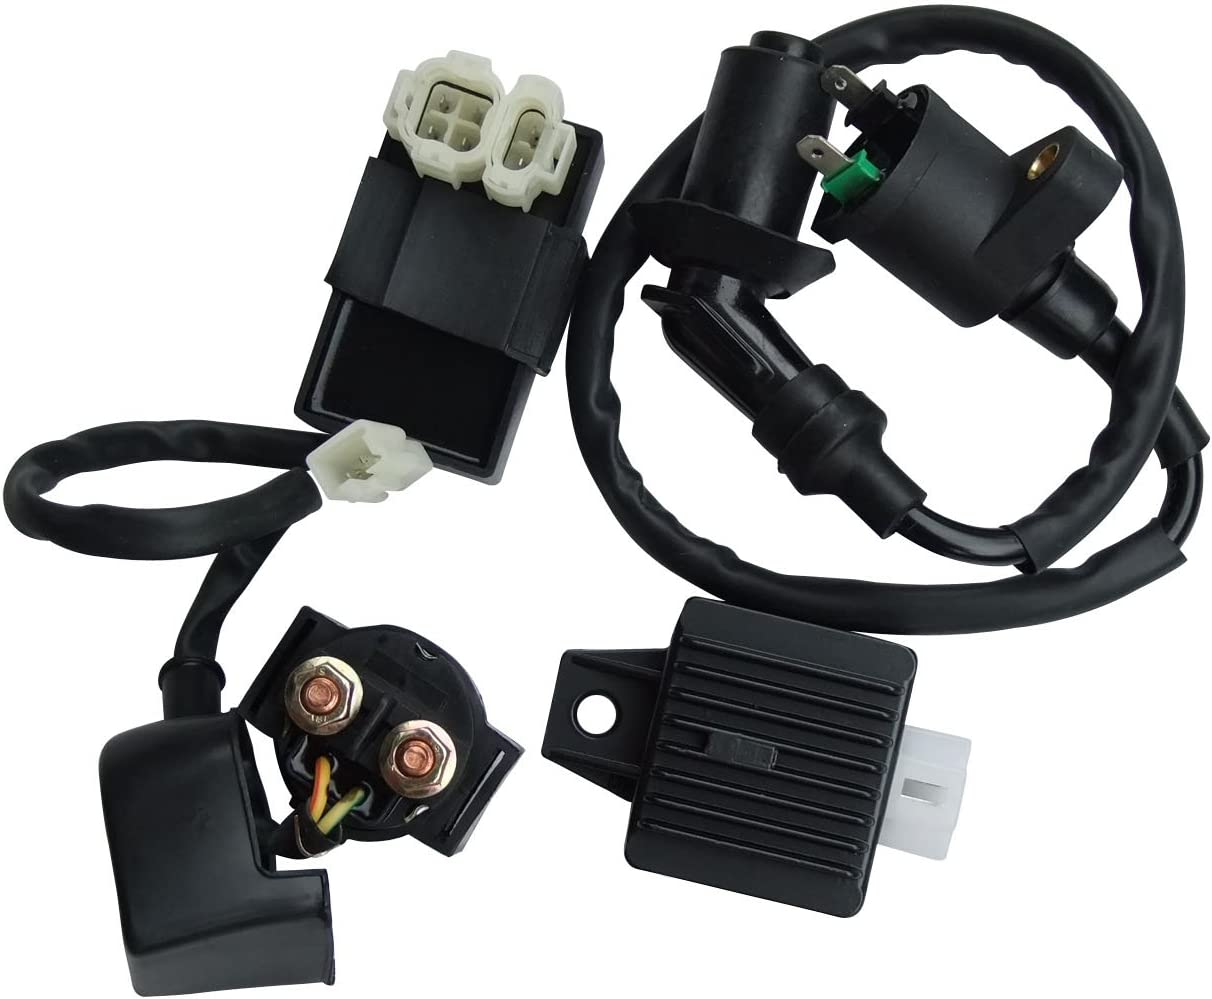 shamofeng Ignition Coil AC CDI Solenoid Relay Voltage Regulator For GY6 49cc 50cc 125cc 150cc ATV Scooter Moped